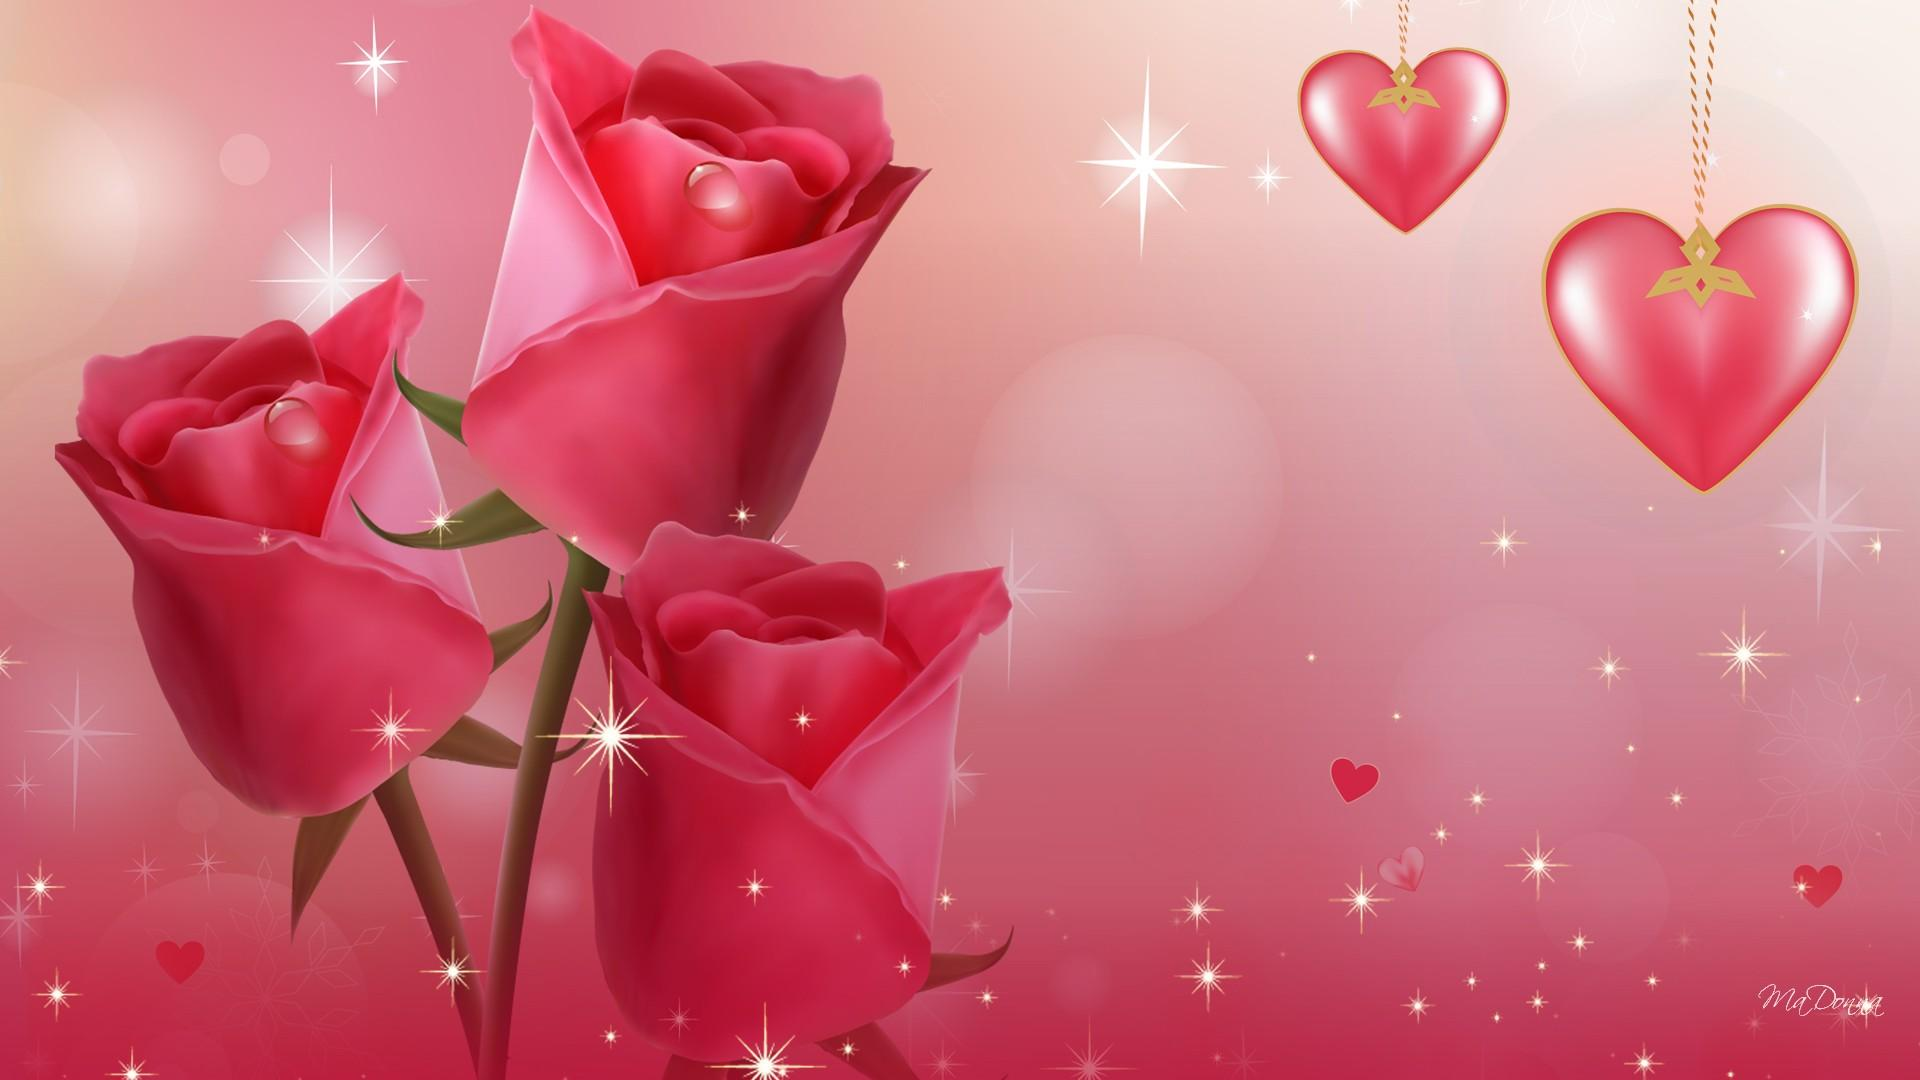 love wallpapers hd for mobile - photo #47